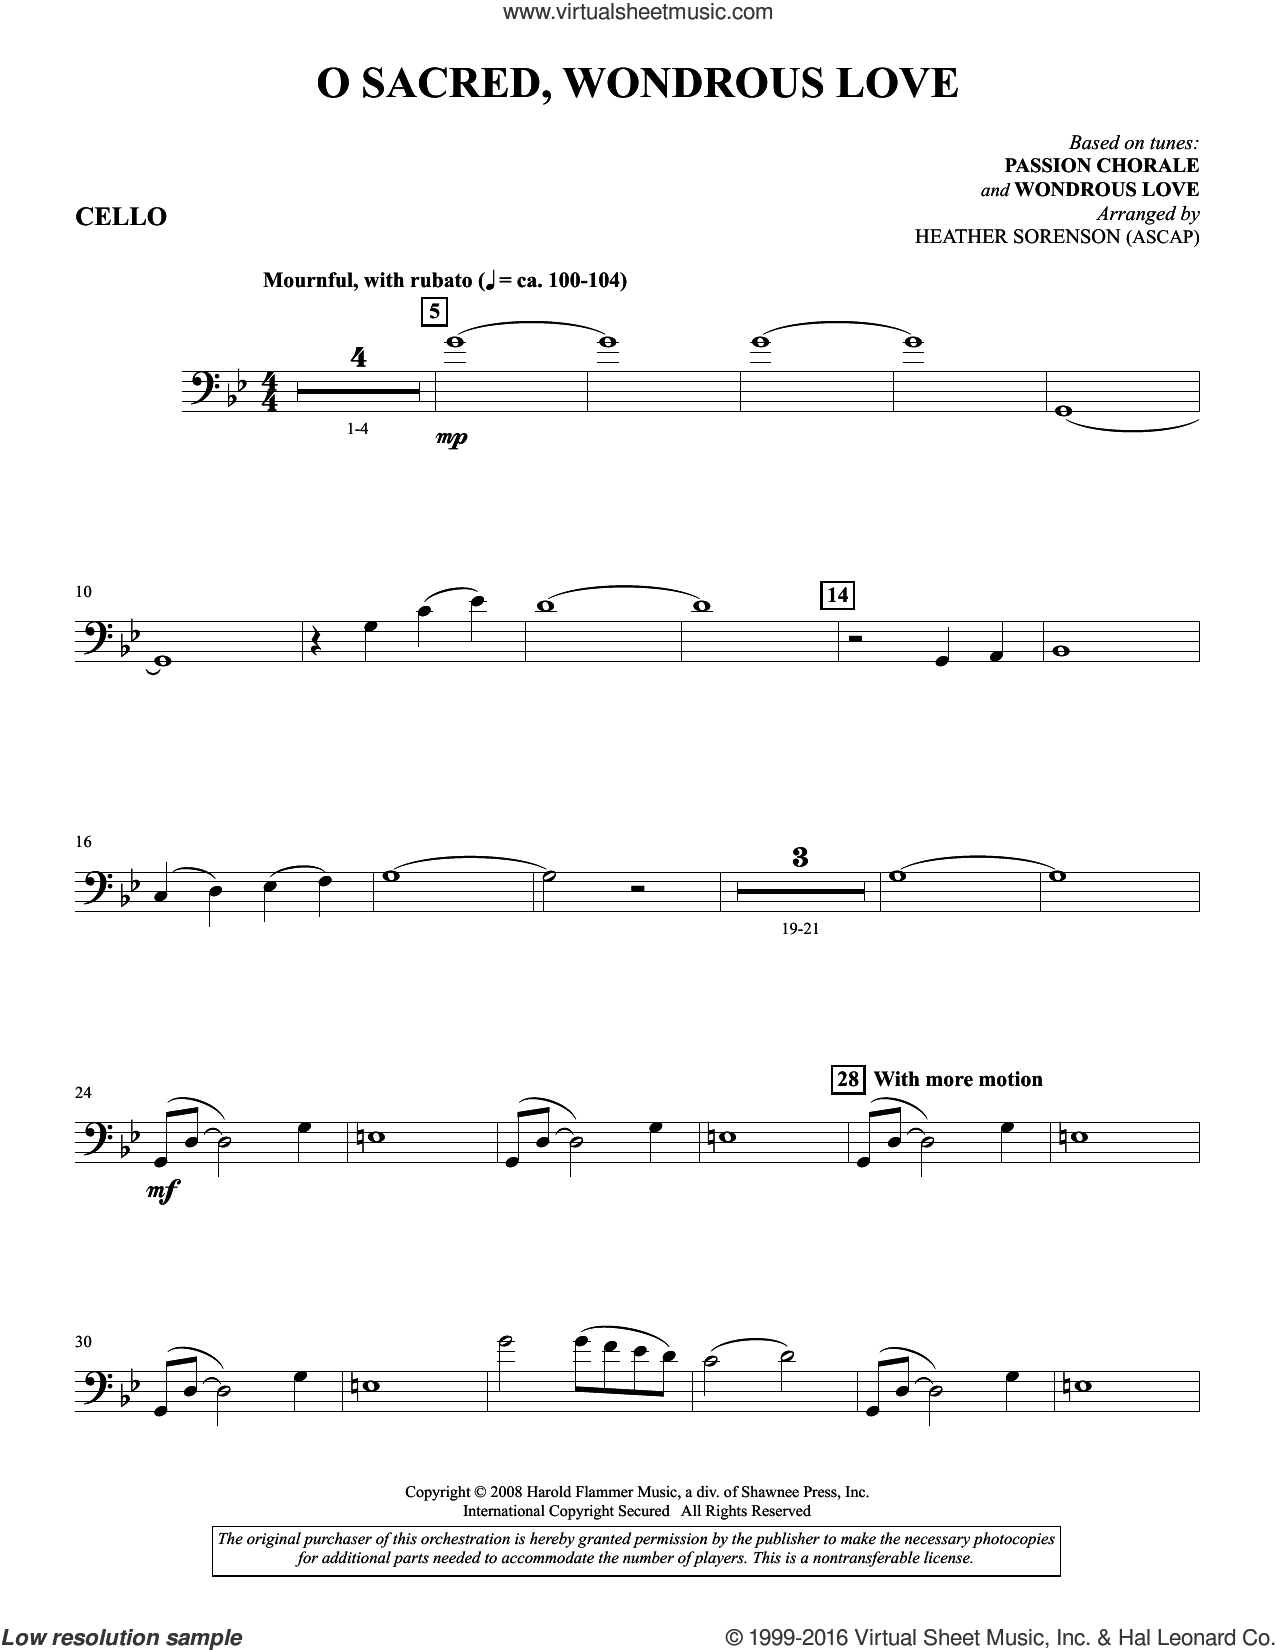 O Sacred, Wondrous Love sheet music for orchestra/band (Cello) by Heather Sorenson, intermediate skill level